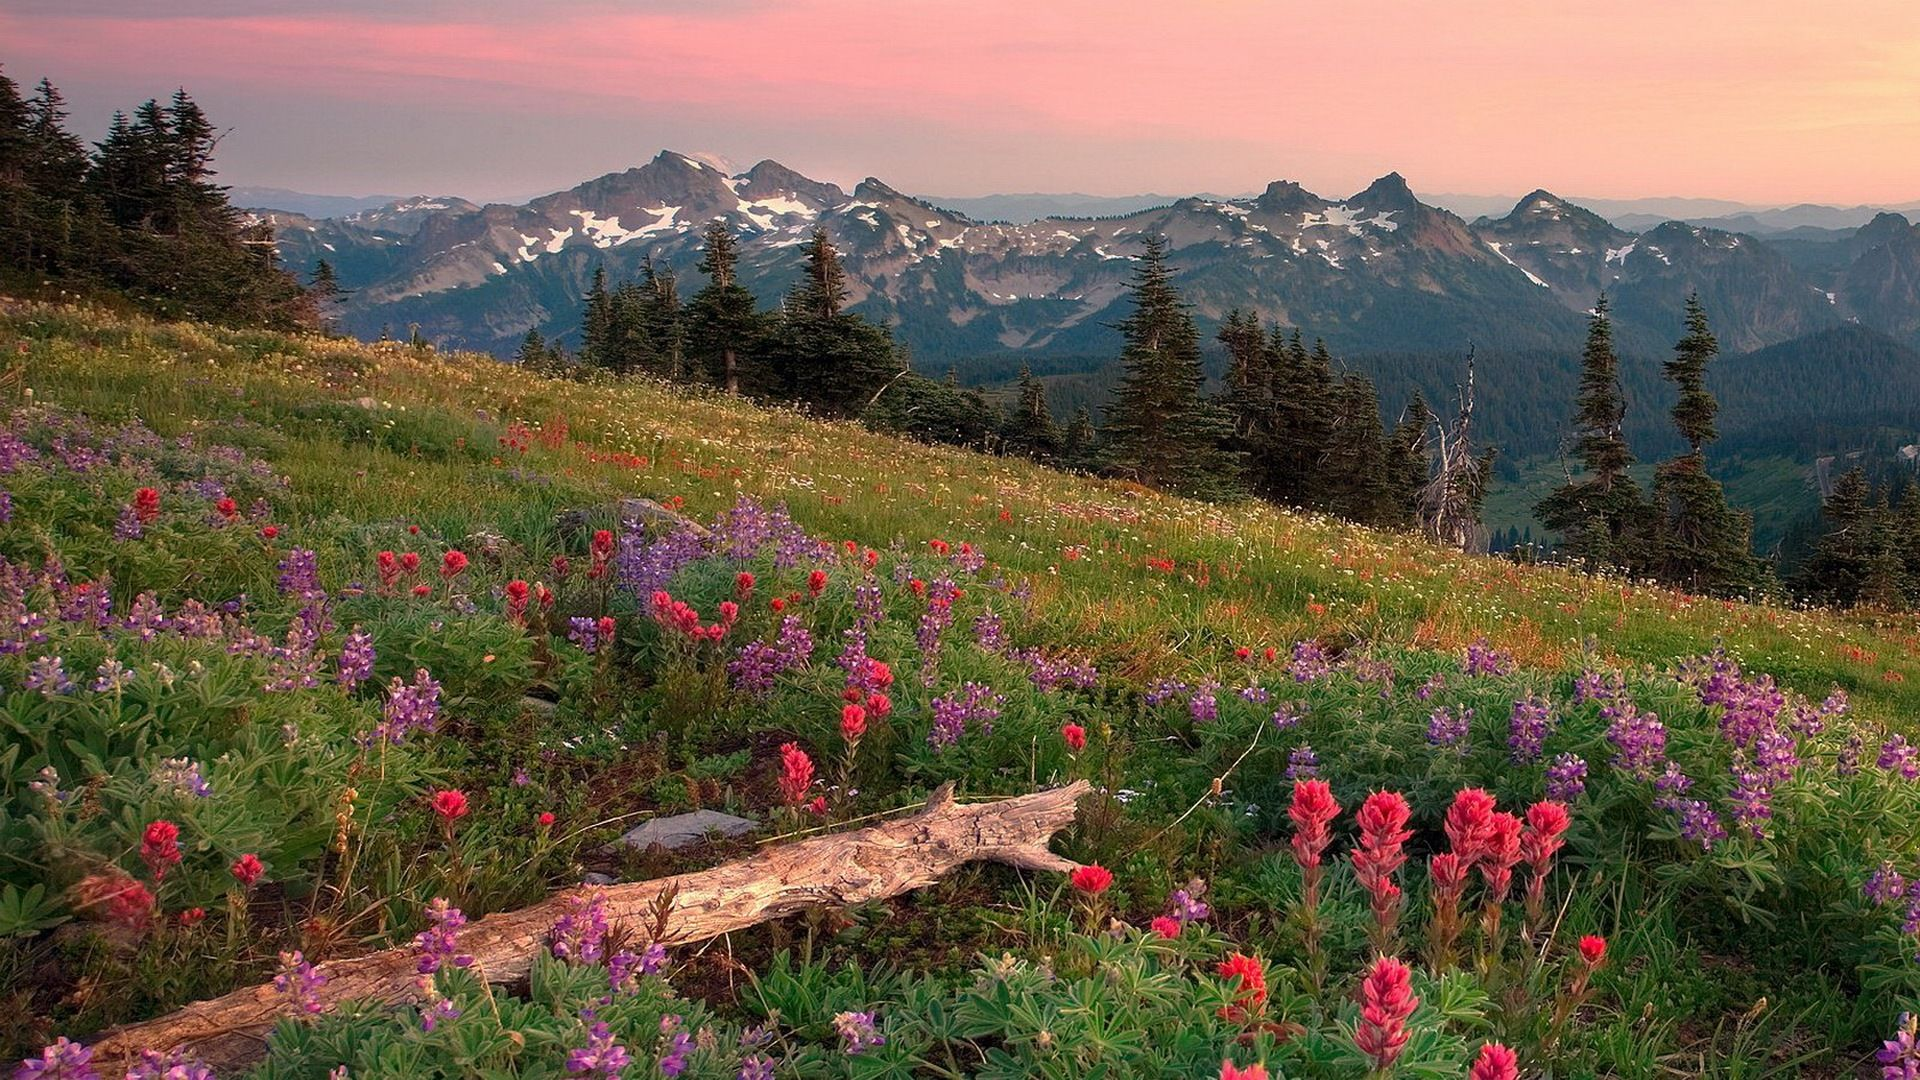 Summer In The Mountains Scenery Wallpaper Landscape Wallpaper Summer Landscape